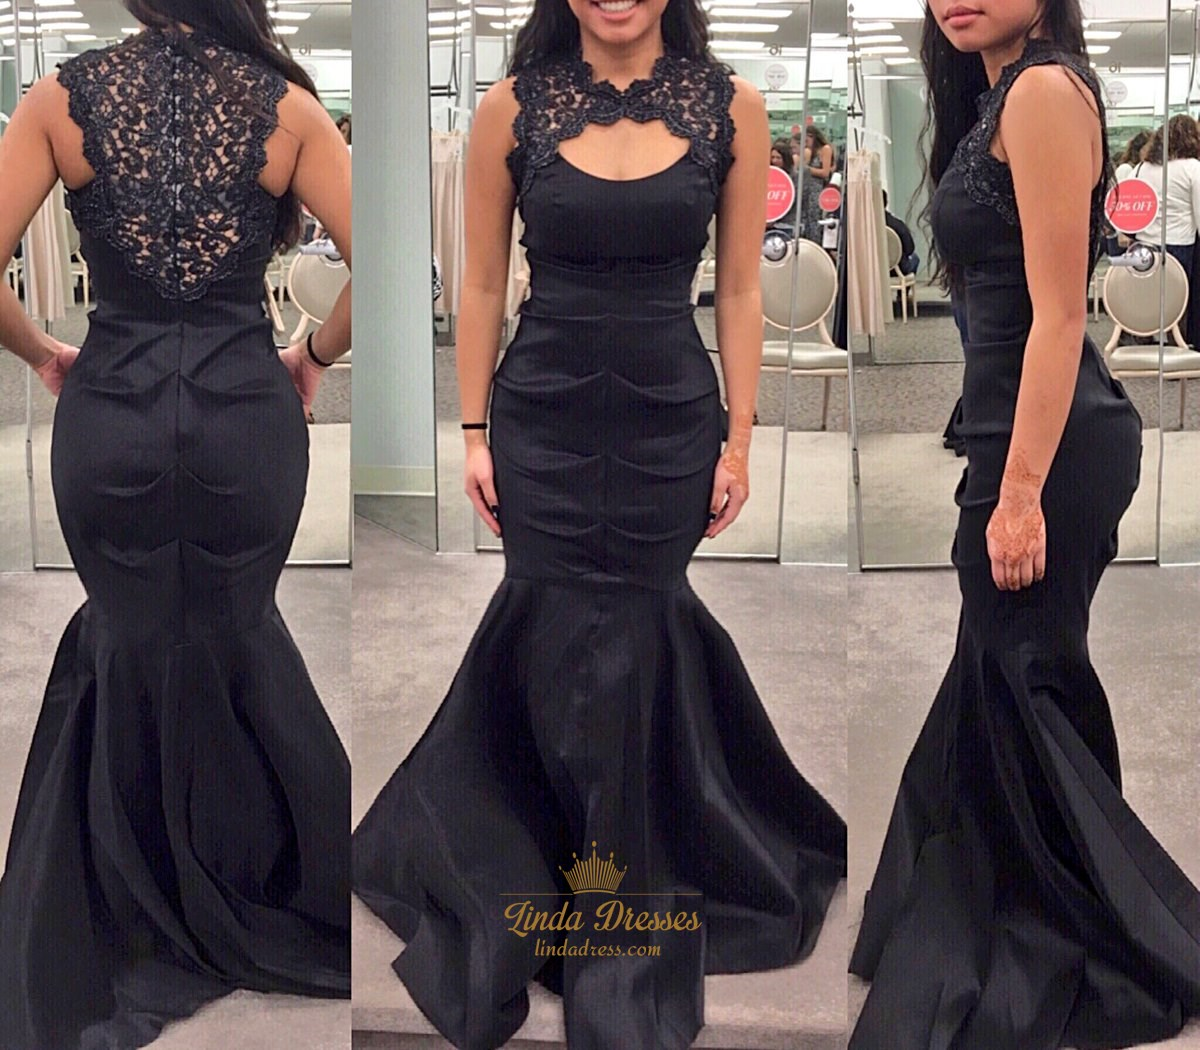 quinceanera hair styles black sleeveless satin mermaid prom gown with lace 2139